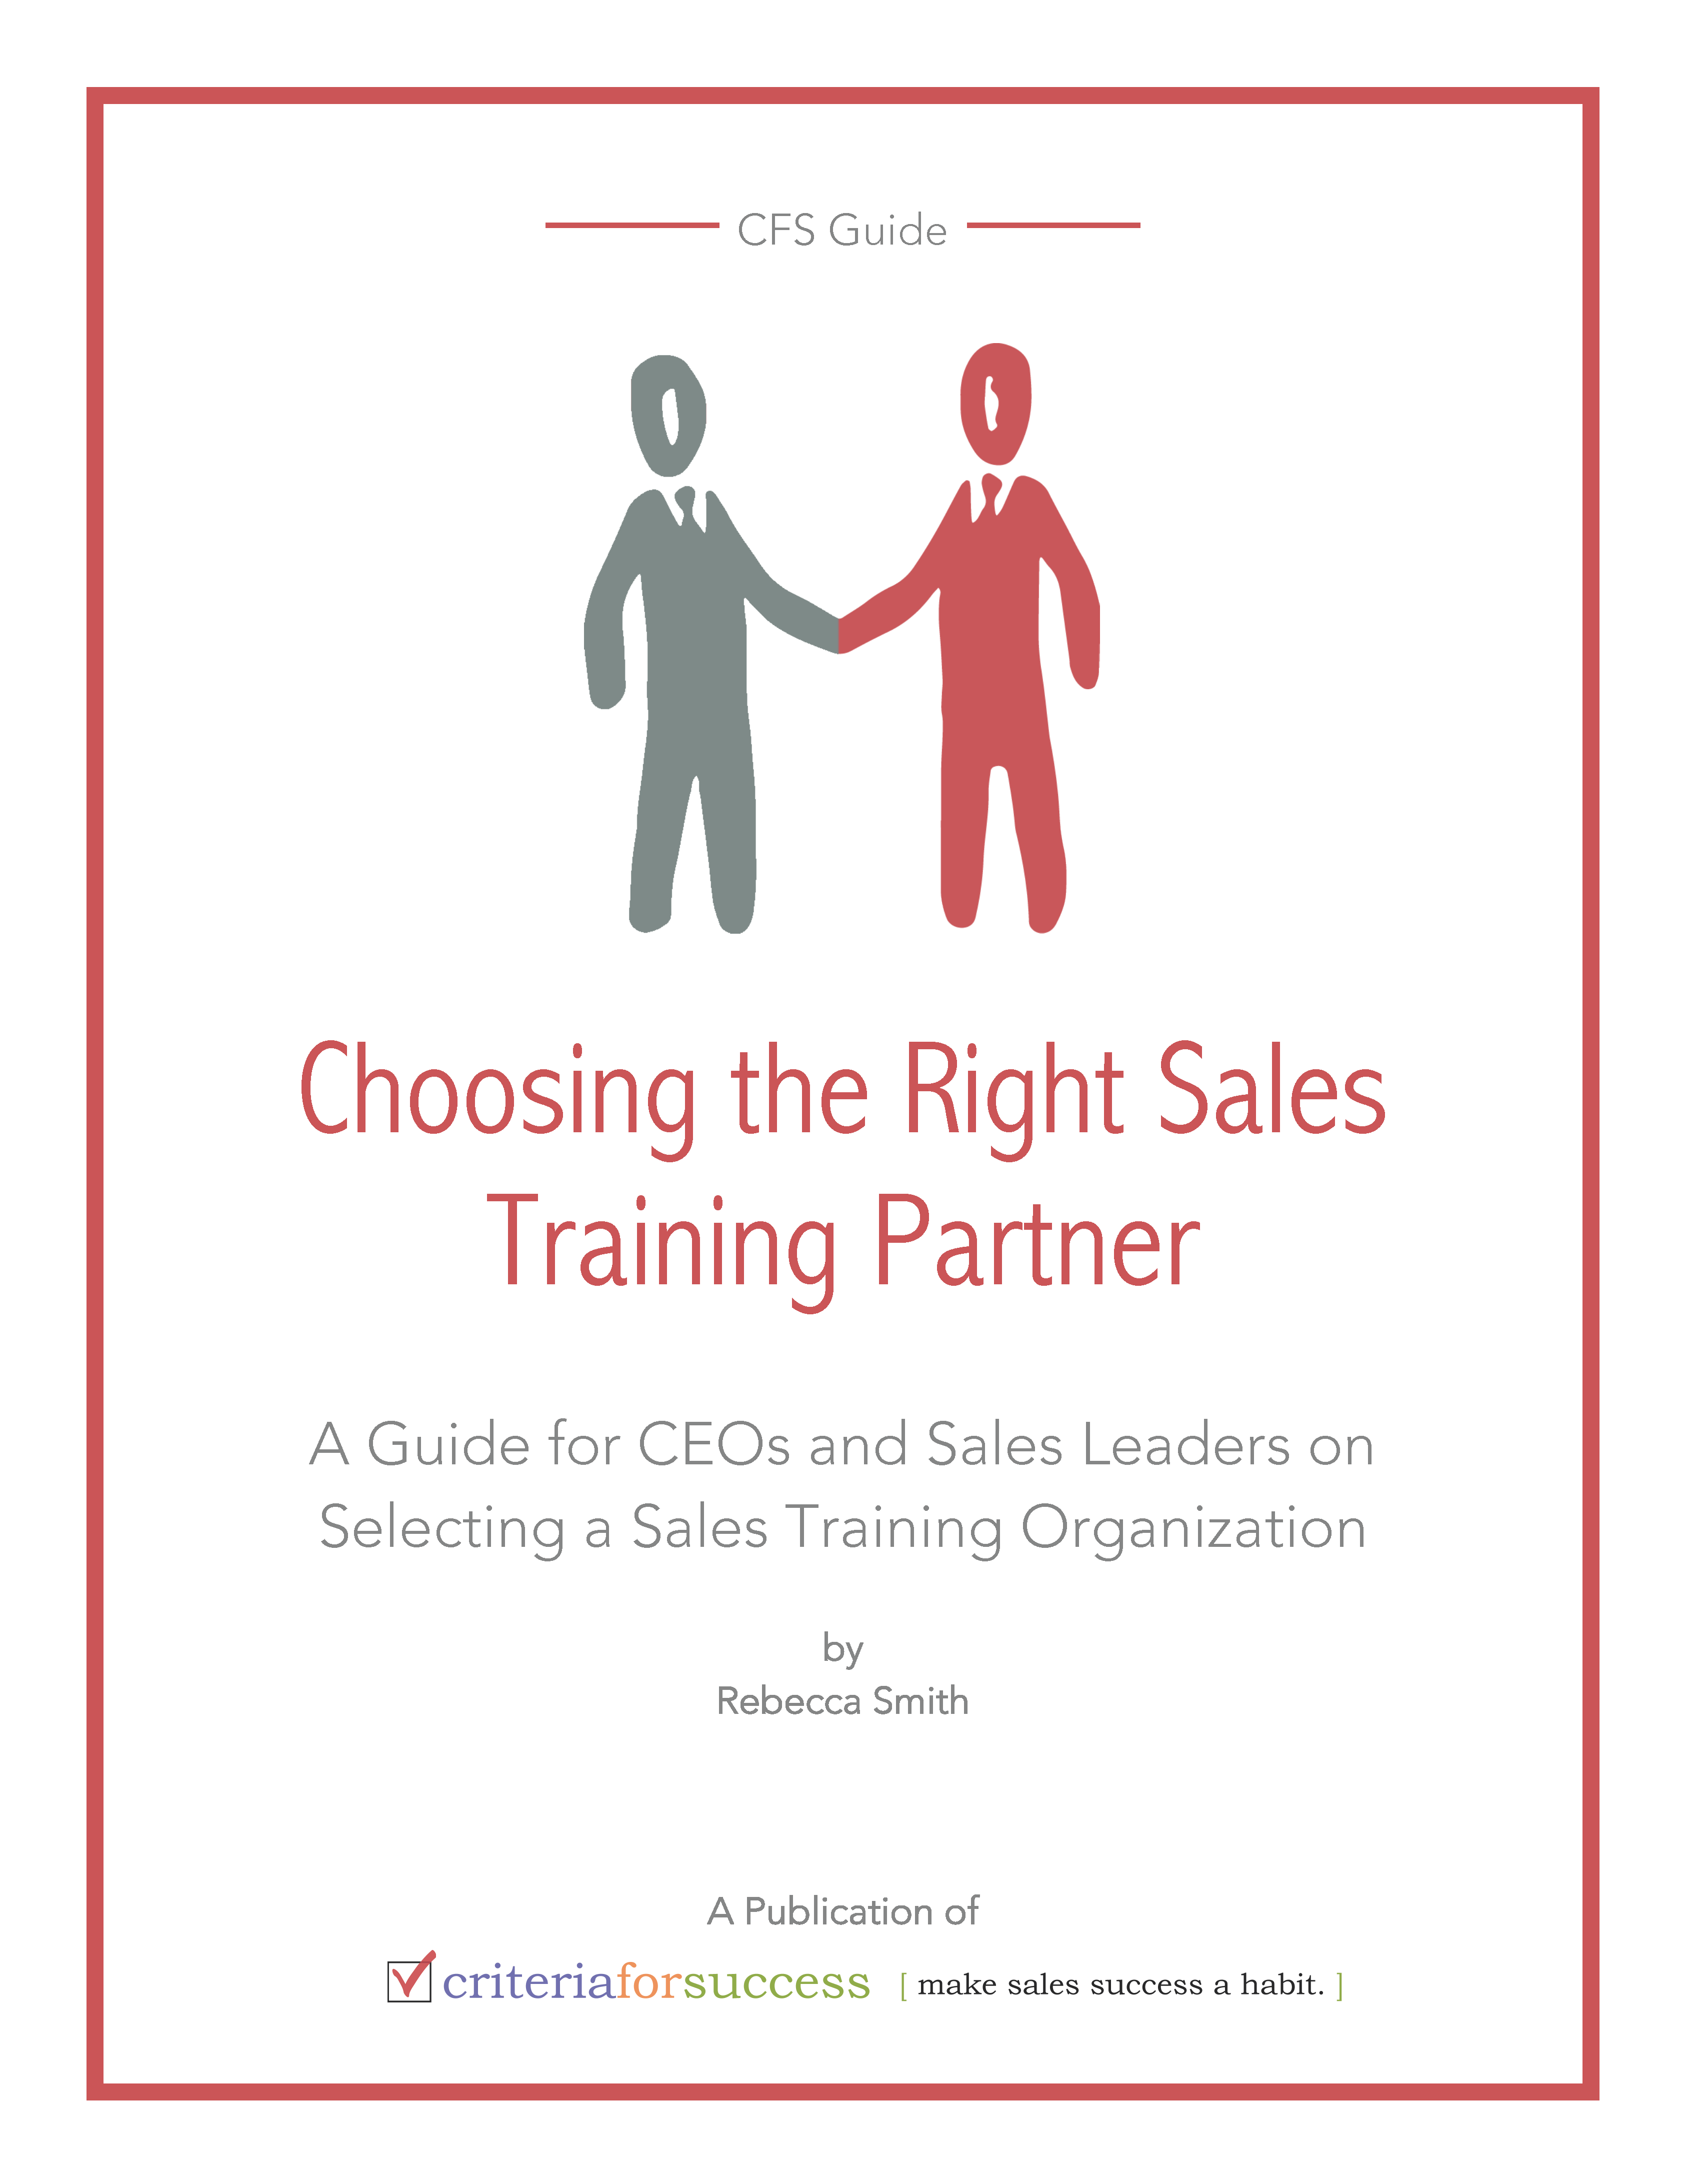 Design_-_The_CFS_Guide_to_Chooe_Right_Sales_Training_Partner_1.png